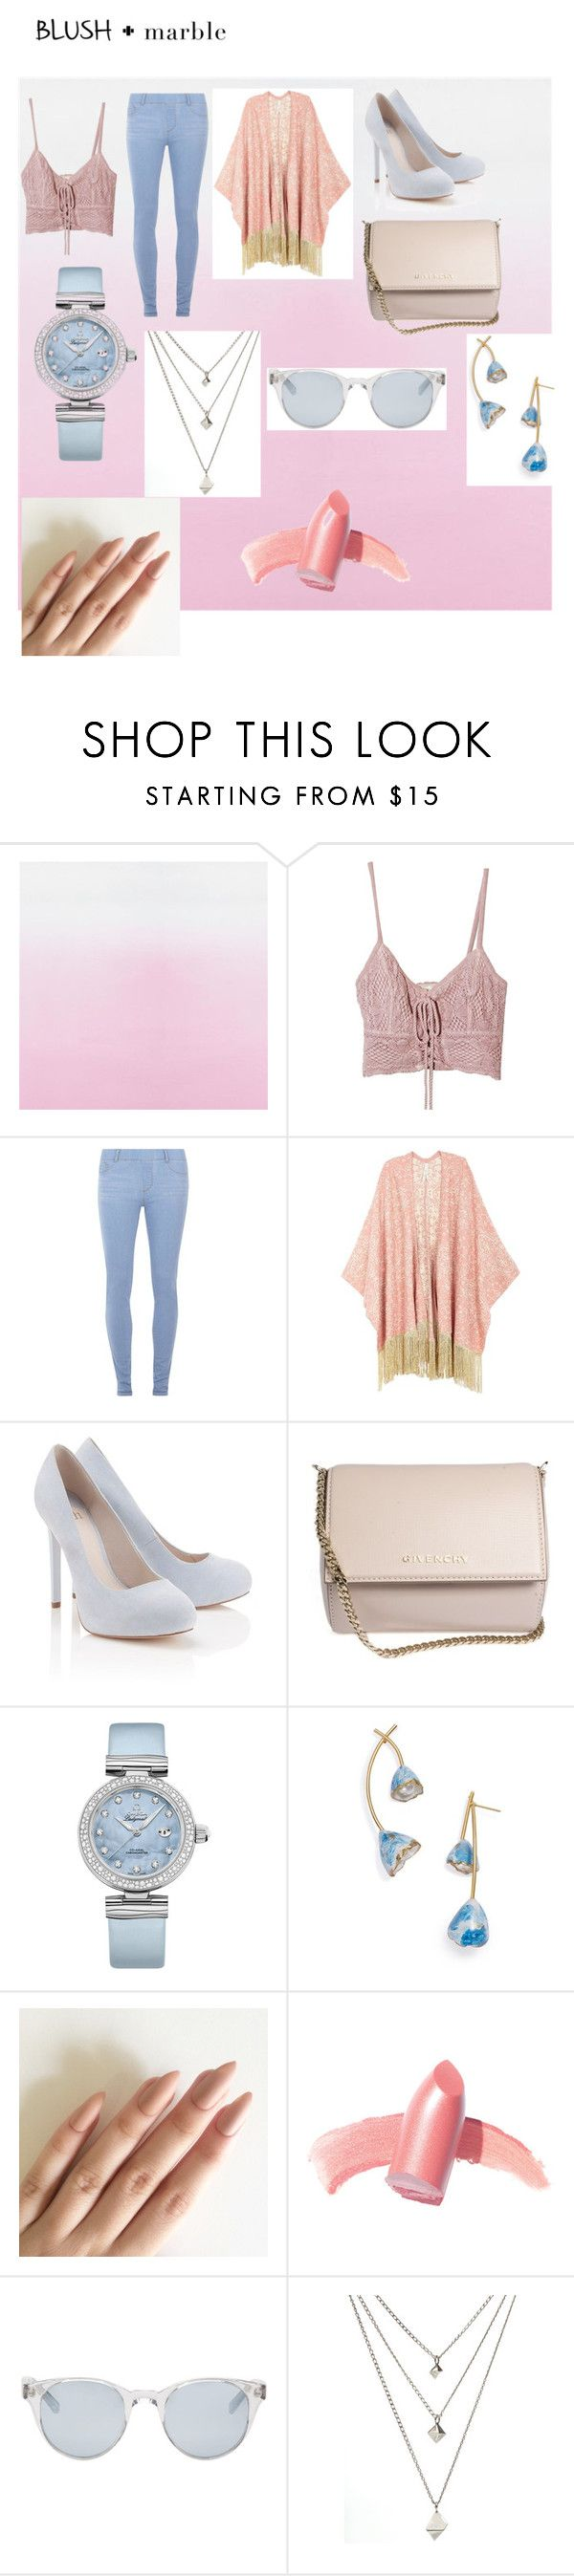 """""""Untitled #19"""" by akira23 ❤ liked on Polyvore featuring Jens Pirate Booty, Dorothy Perkins, Melissa McCarthy Seven7, Lipsy, Givenchy, OMEGA, Tory Burch, Elizabeth Arden, Sun Buddies and homedecor"""